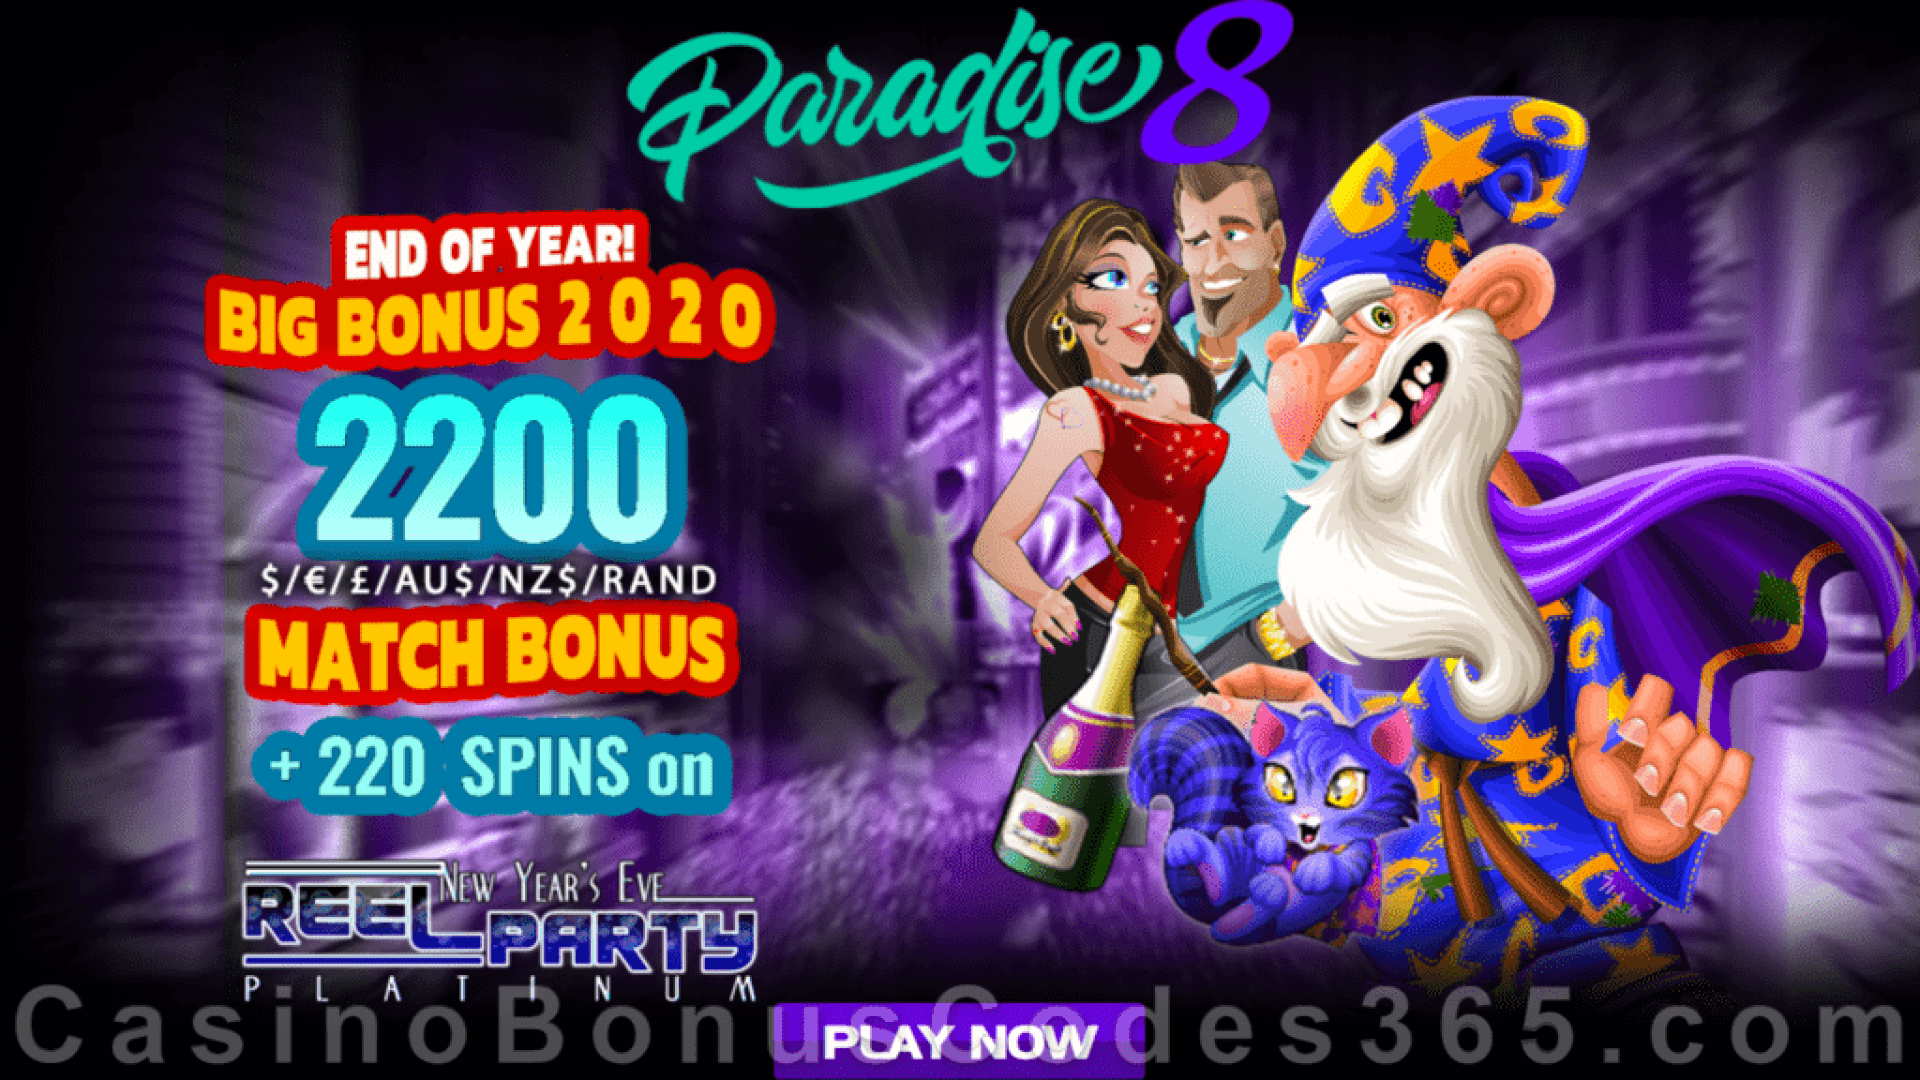 Paradise 8 220% Match Bonus plus 220 FREE Spins End of the Year Super Promo